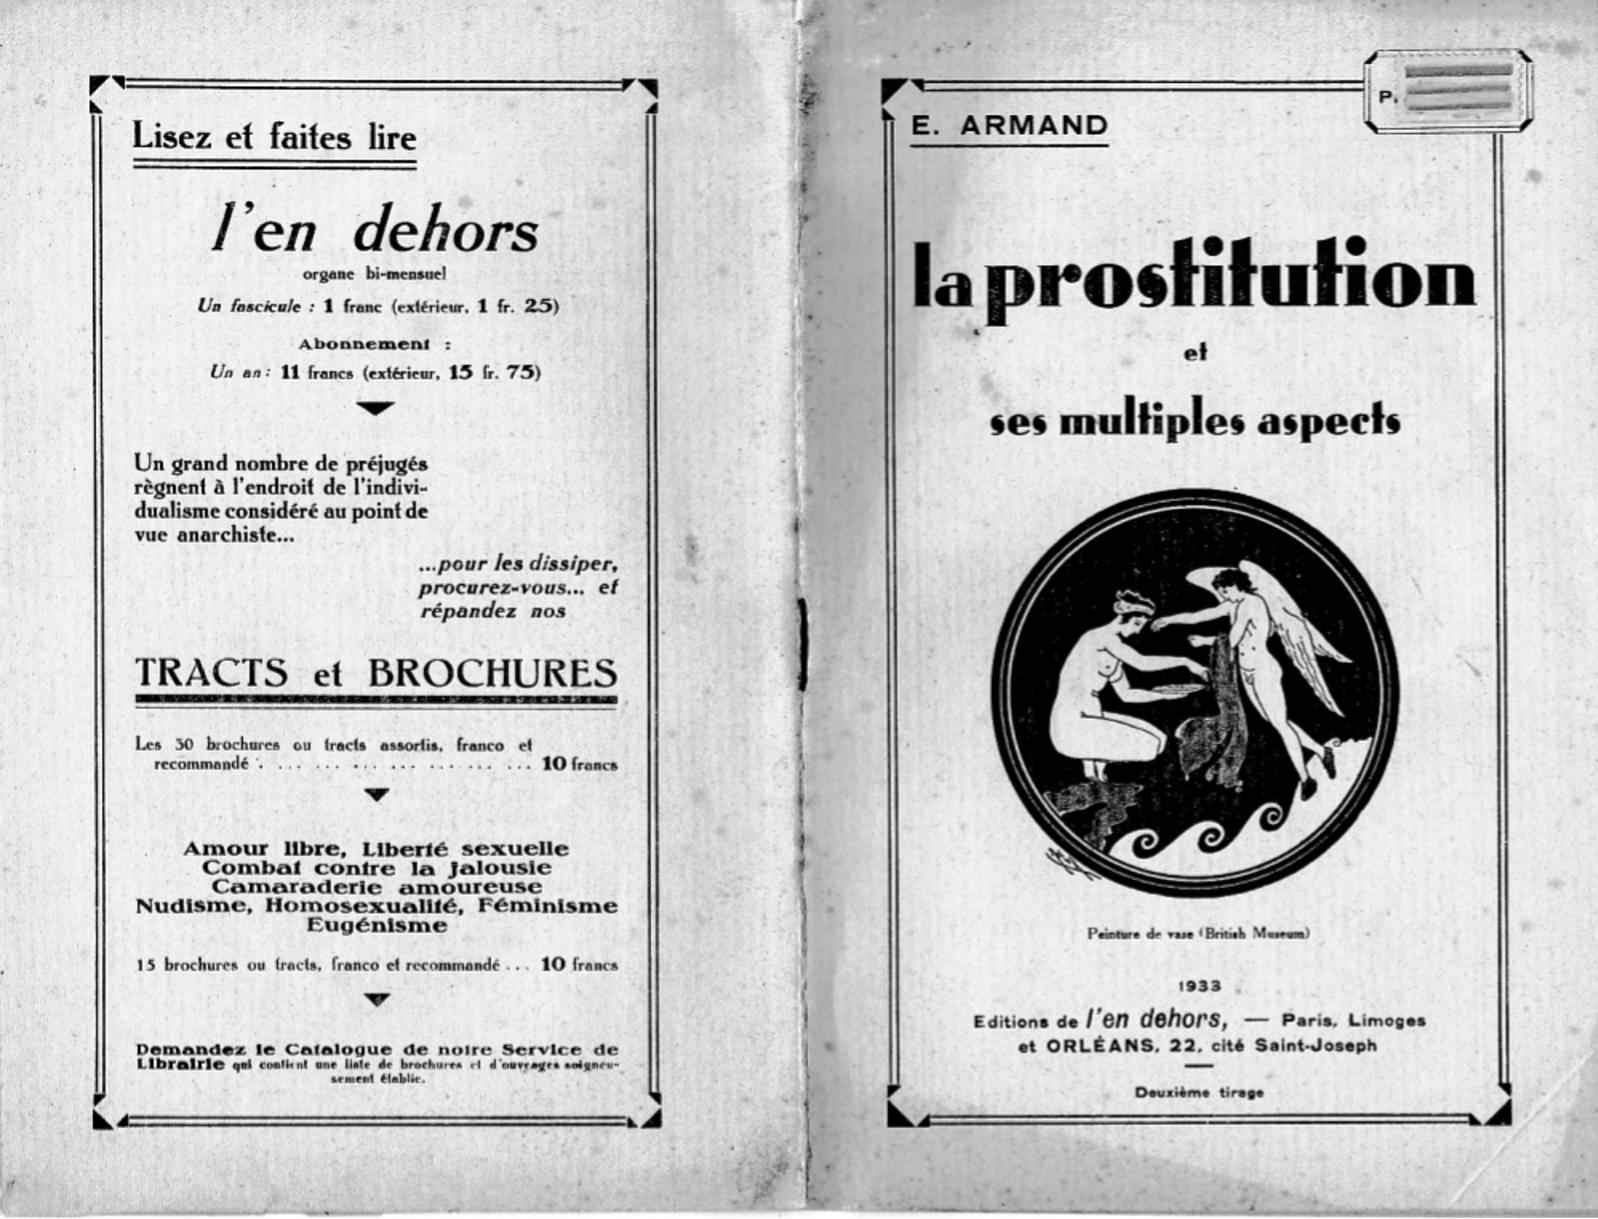 « La Prostitution et ses multiples aspects », par E. Armand